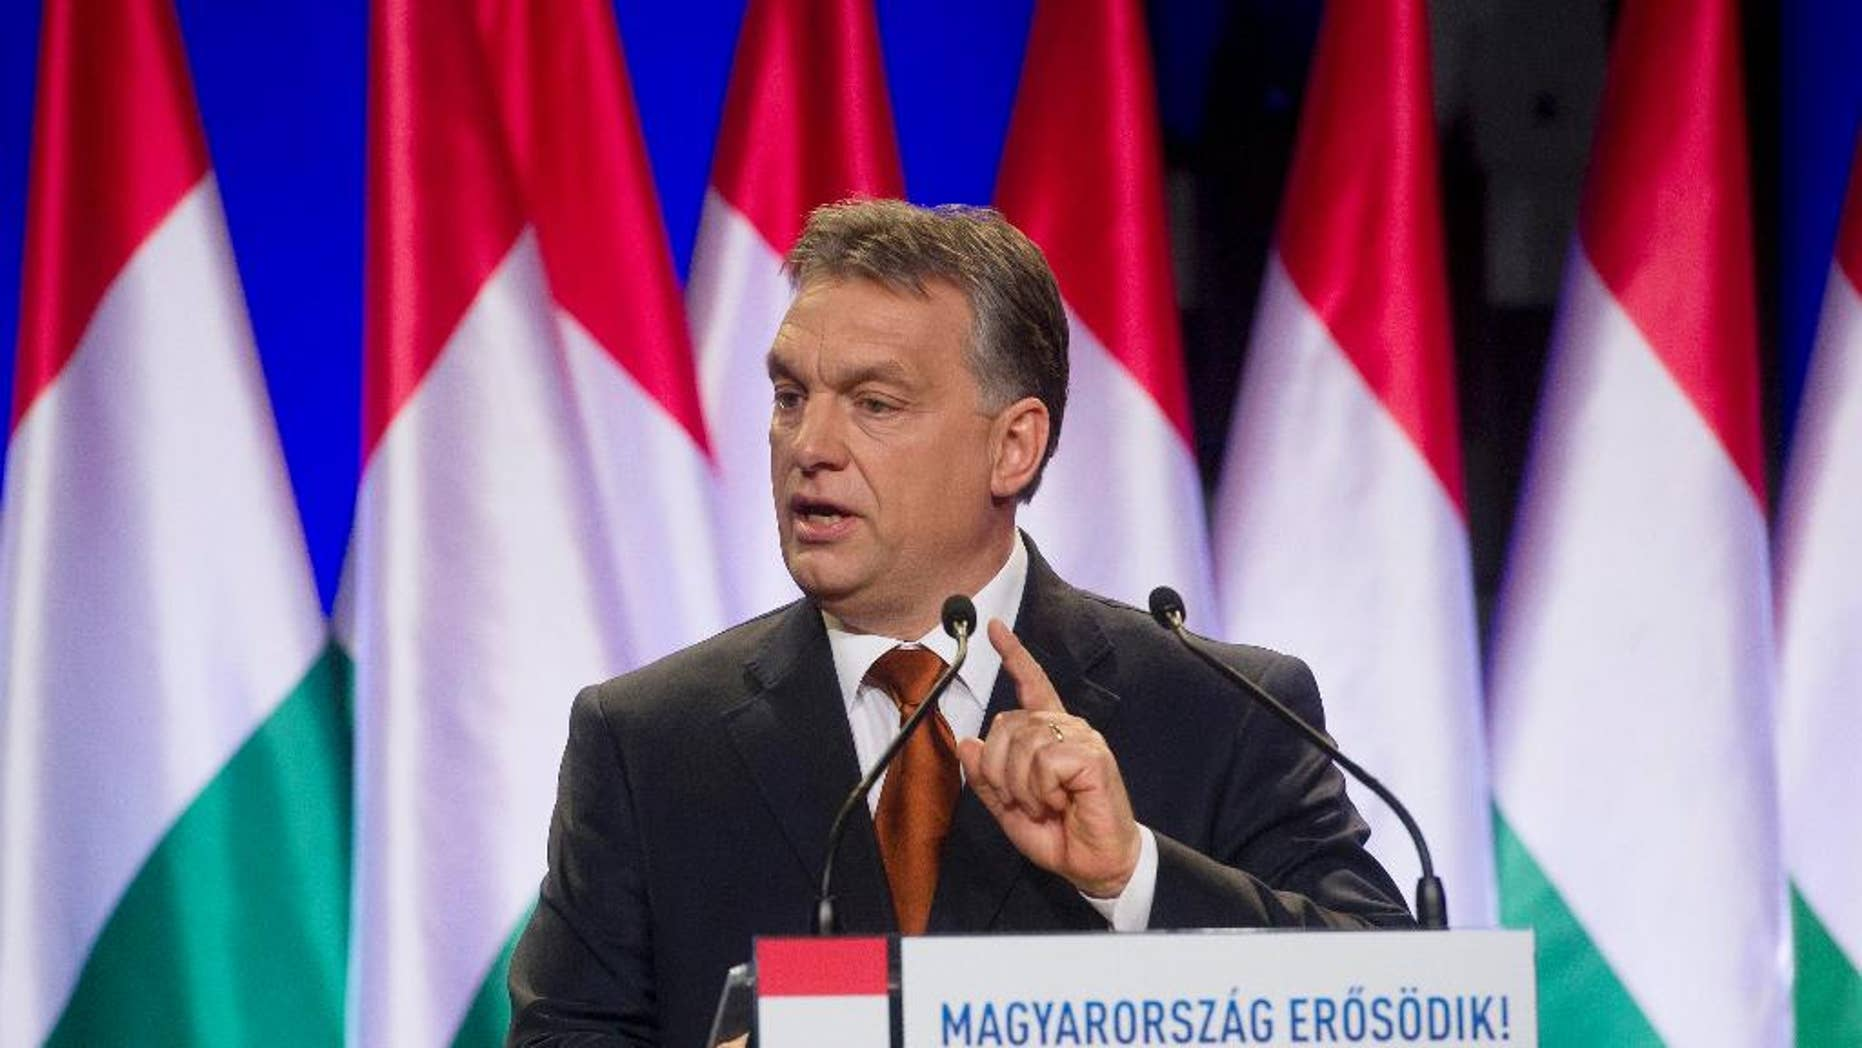 """FILE - In this Feb. 27, 2015 file photo Hungarian Prime Minister Viktor Orban delivers his annual """"state of the nation"""" speech in Budapest, Hungary. A debate about restoring the death penalty has been a recurring issue with Orban since a 2002 bank robbery in which eight people were murdered. The inscription reads: """"Hungary Grows Stronger"""". (Szilard Koszticsak/MTI via AP, File)"""